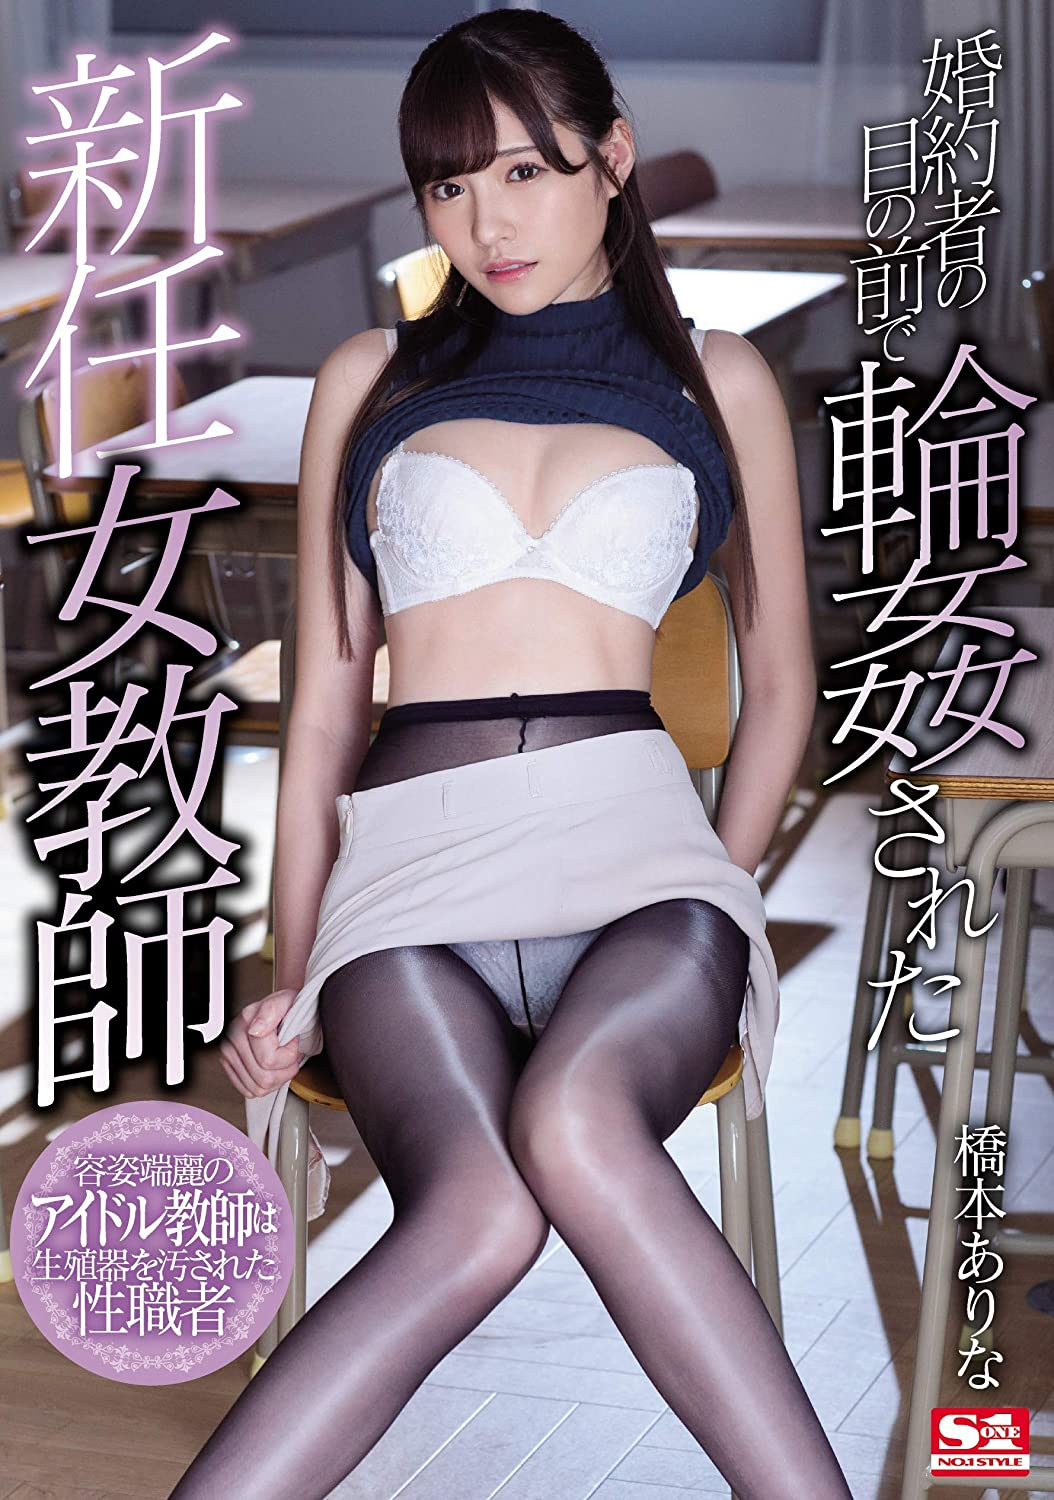 [SSNI-392] (English subbed) The New Female Teacher Was Gangbang R**ed In Front Of Her Fiancee - Arina Hashimoto